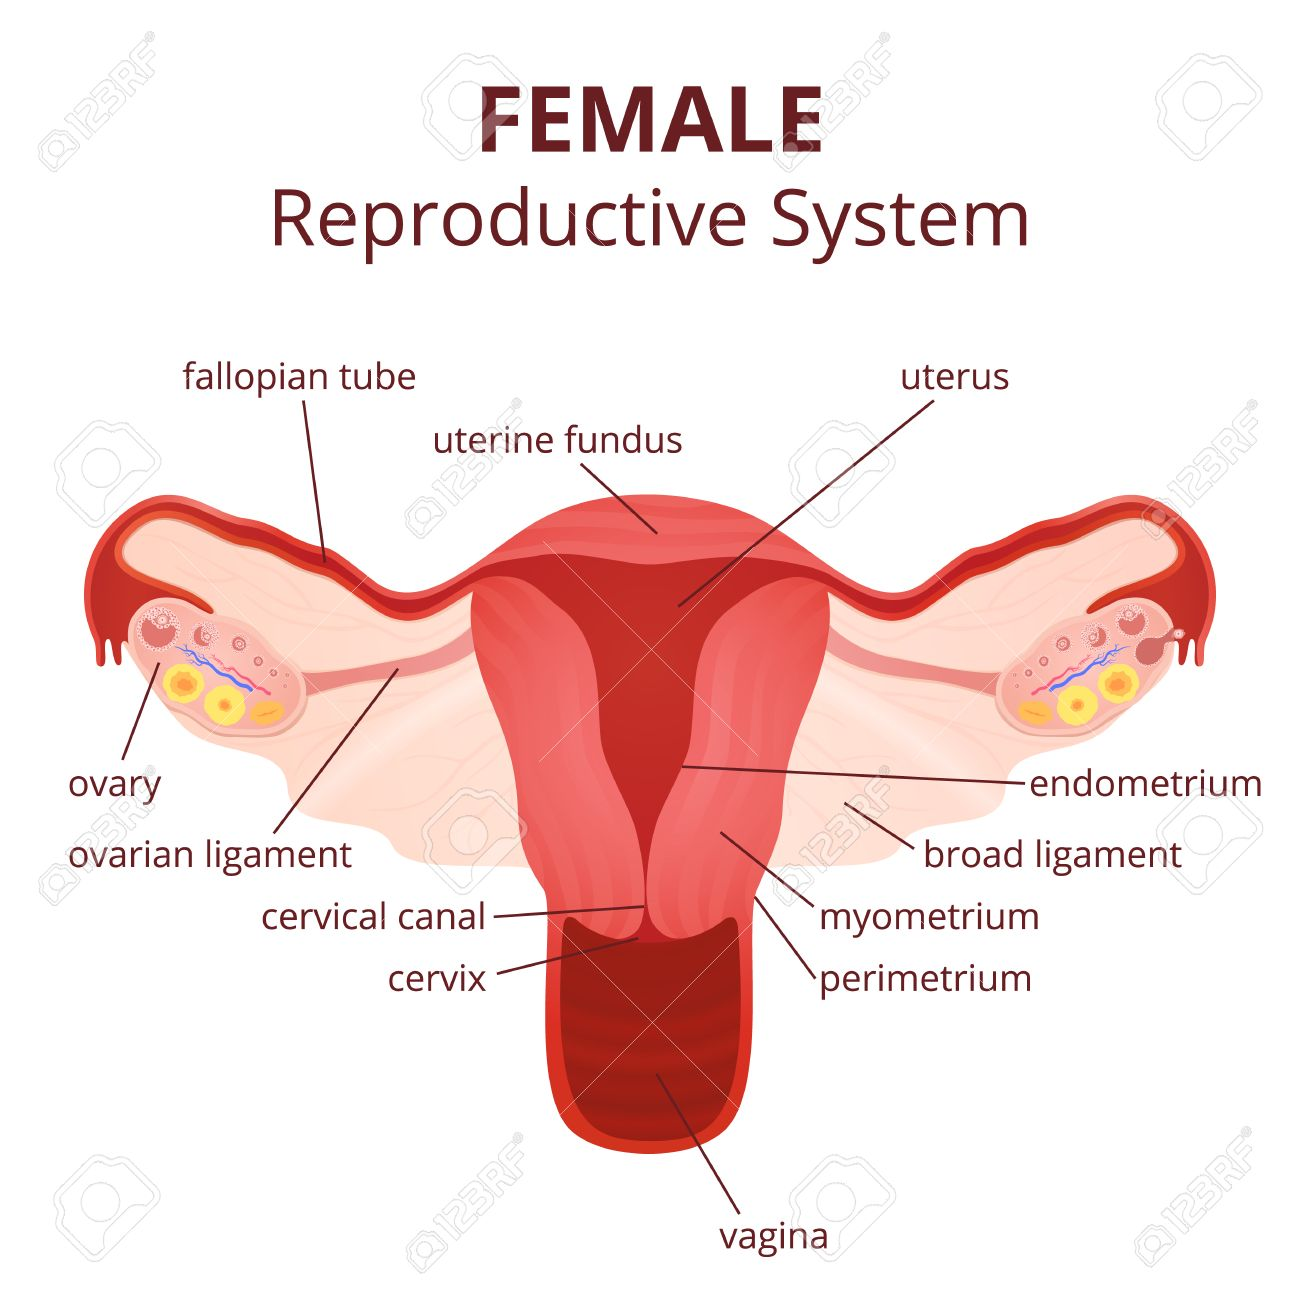 Female Reproductive System The Uterus And Ovaries Scheme The